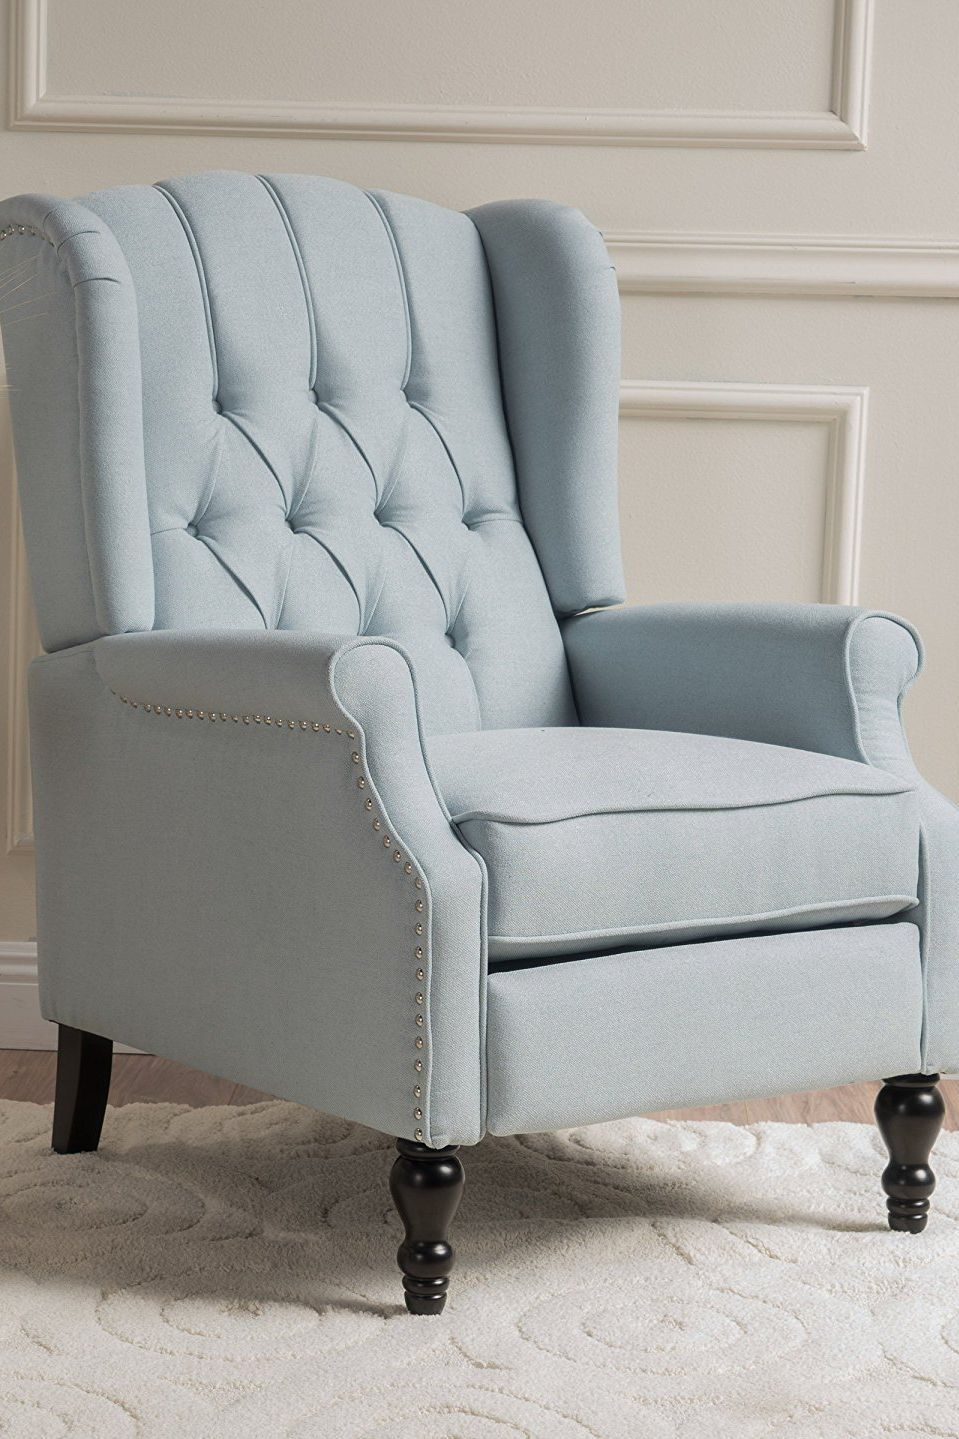 These Comfy Chairs Are As Pretty As They Are Cozy Arm Chairs